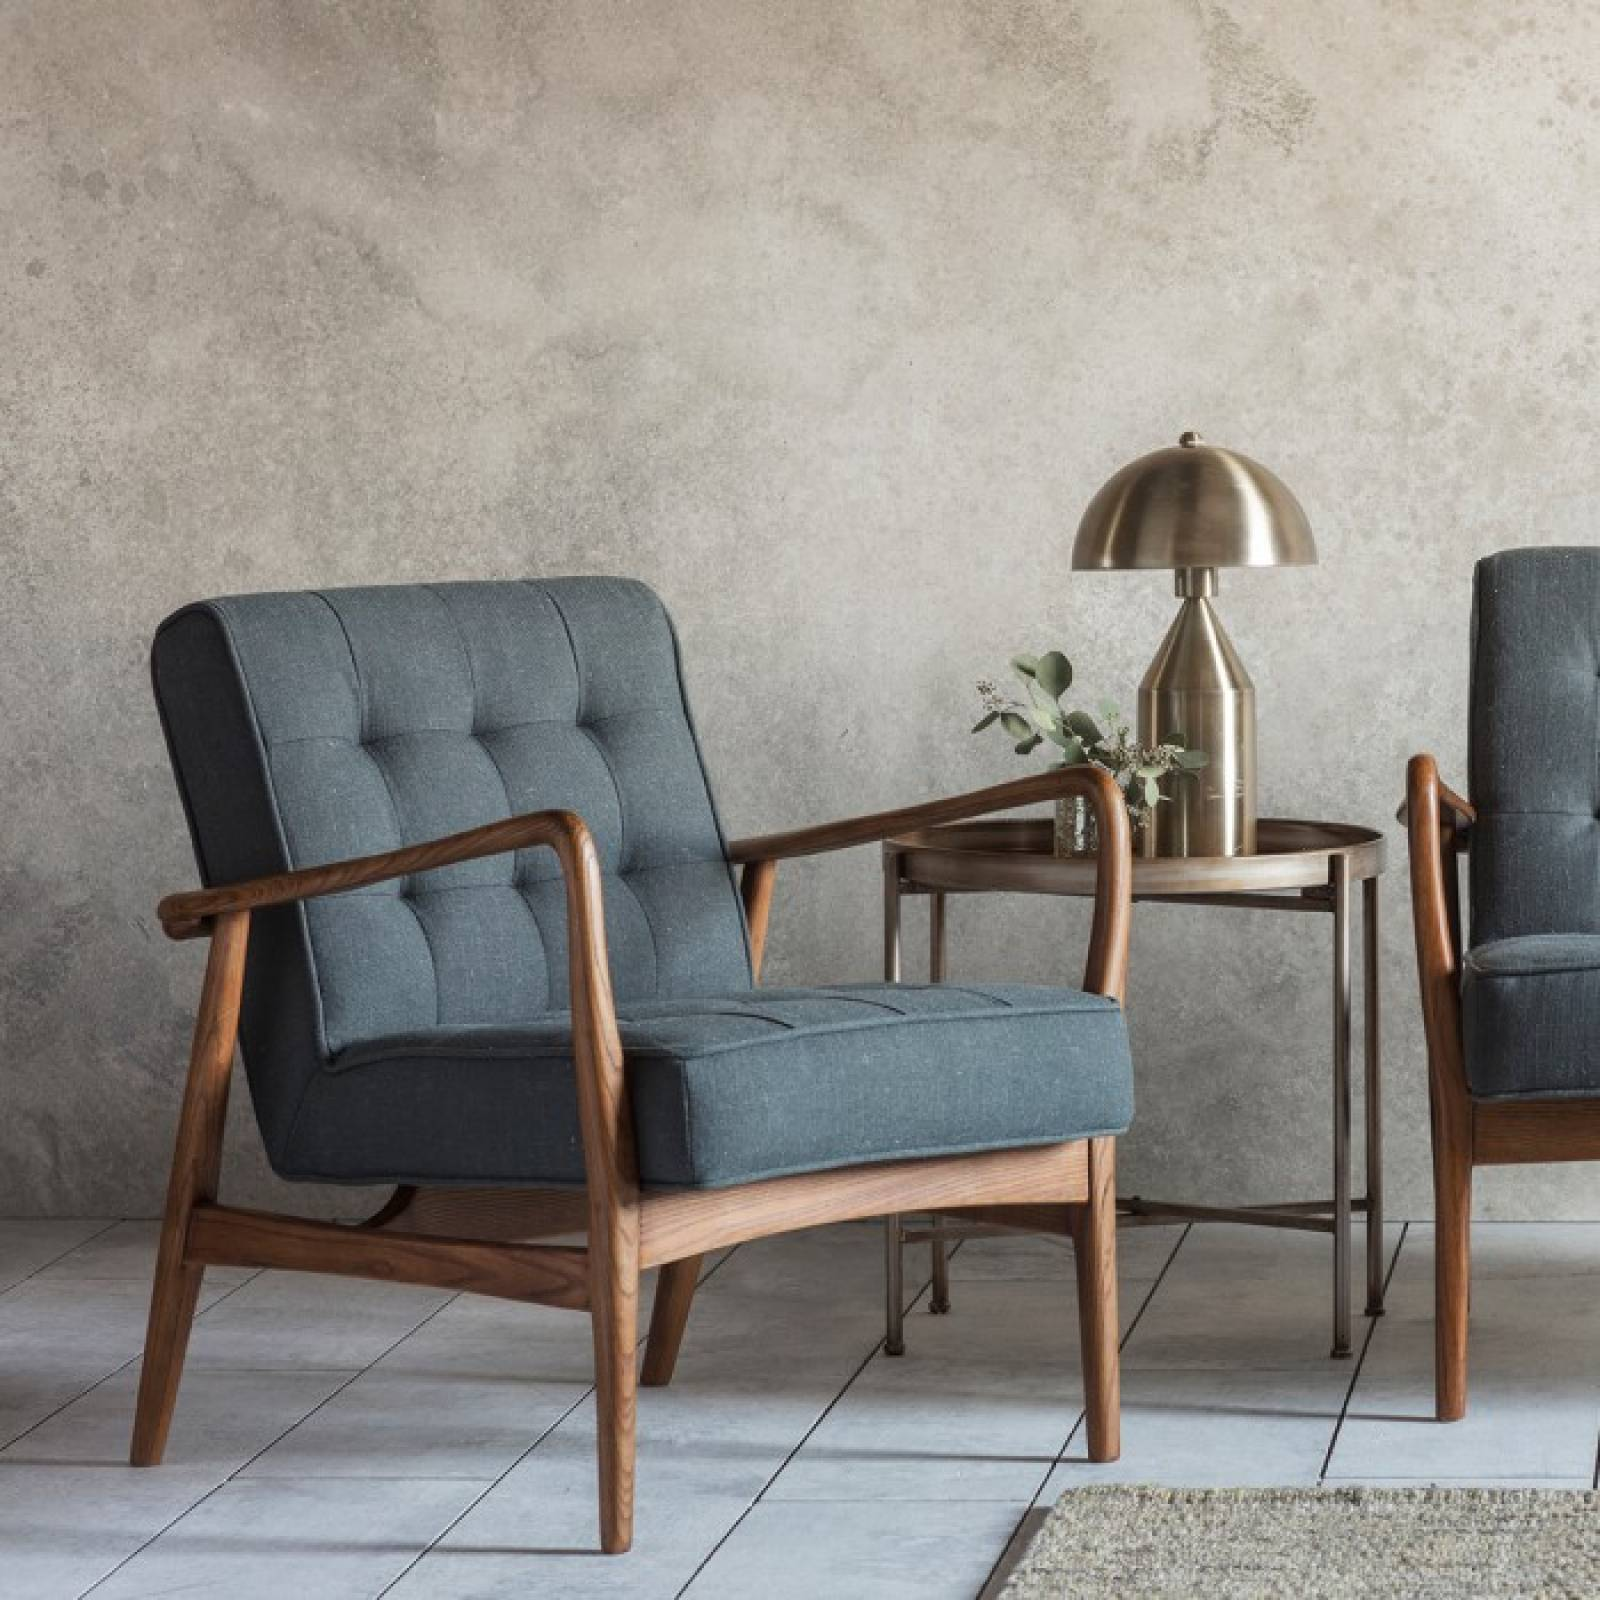 The Olsen - Armchair in Fabric